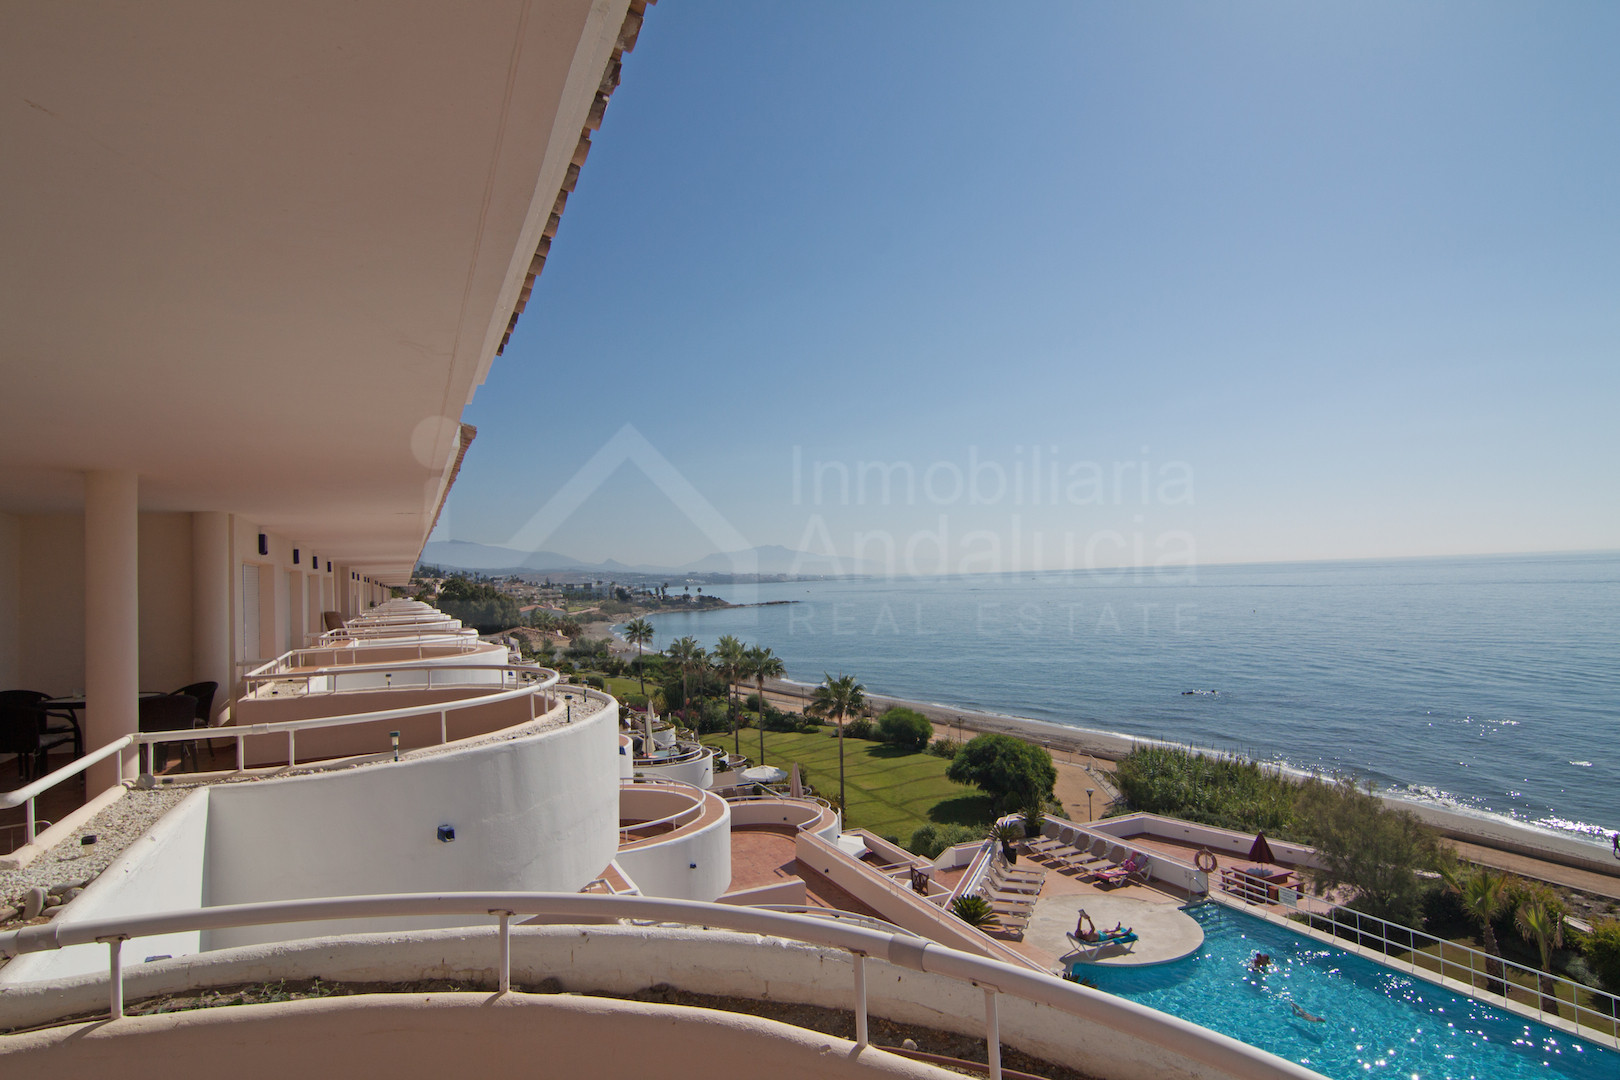 Luxury apartment with unbeatable sea views for sale Sinfonia del Mar Estepona